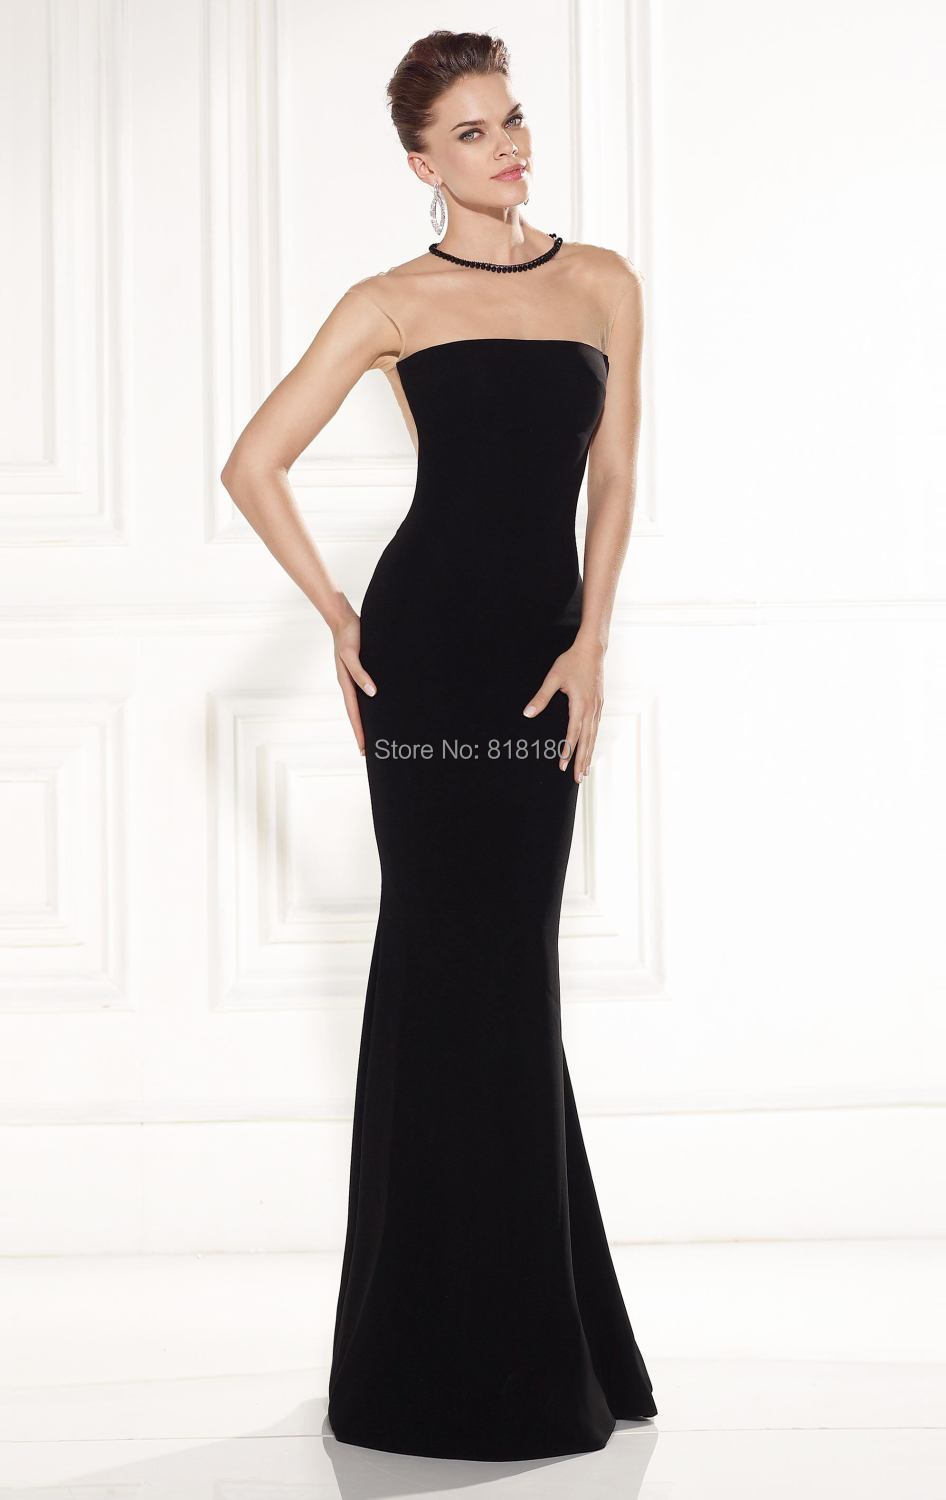 Neueste designs Tarik Ediz robe de soiree kleid party elegante o ...